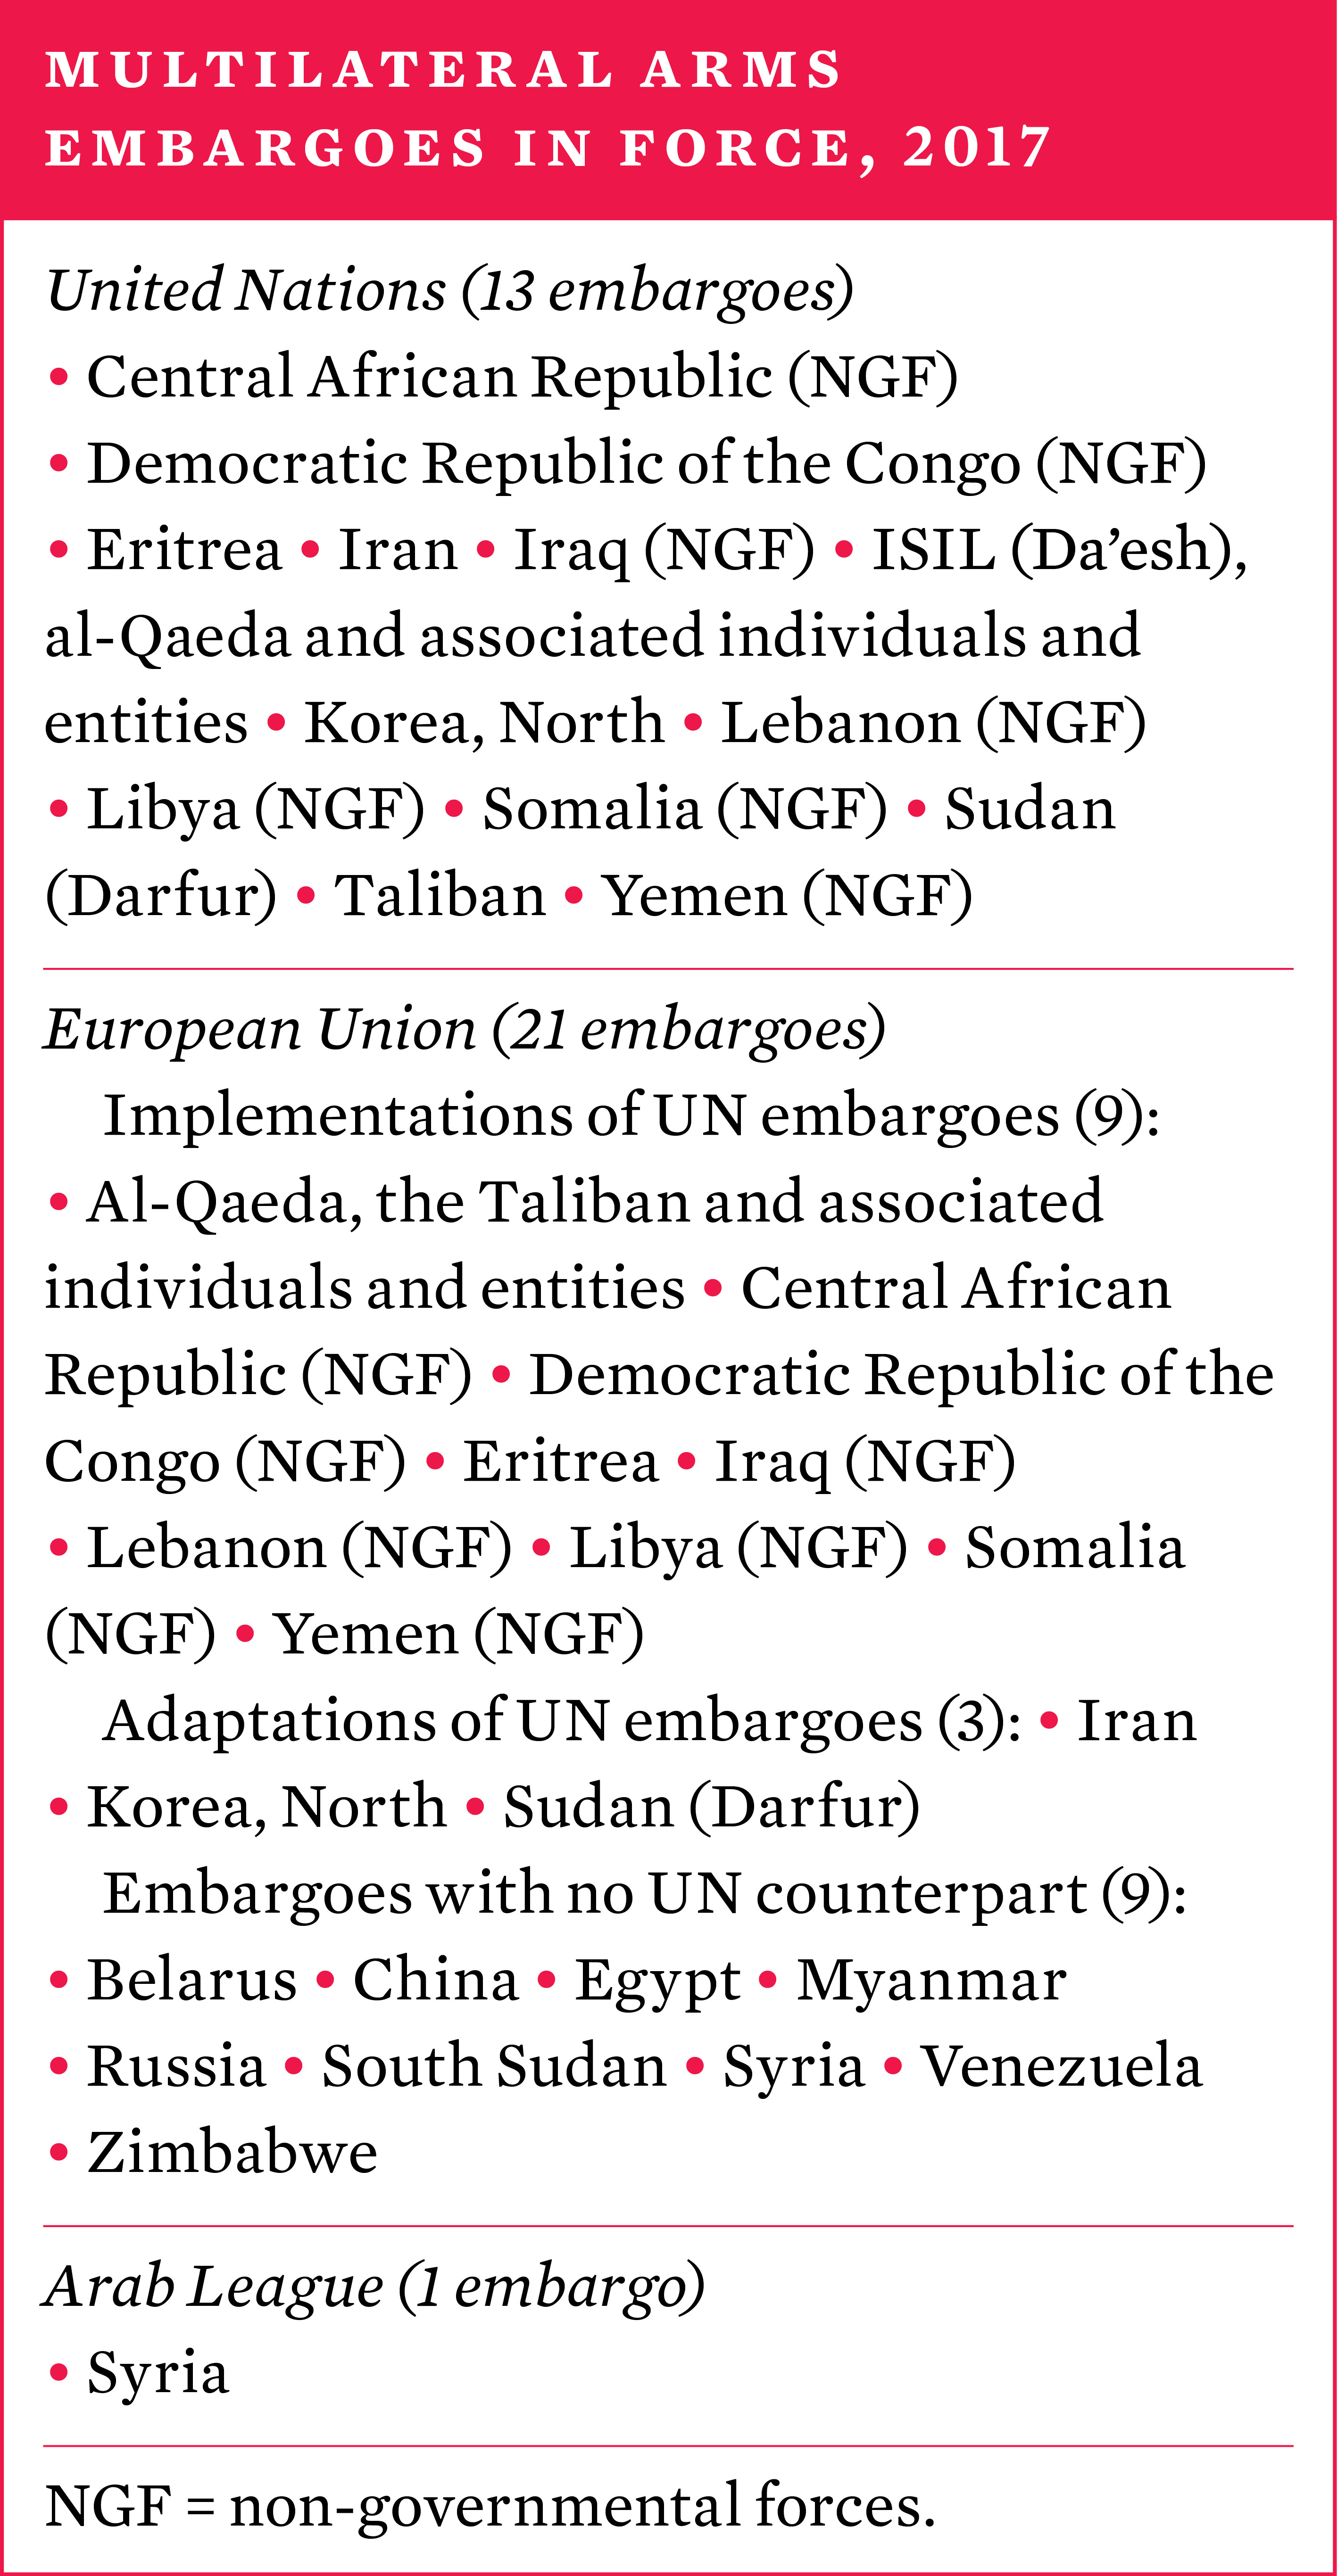 Multilateral arms embargoes in force, 2017